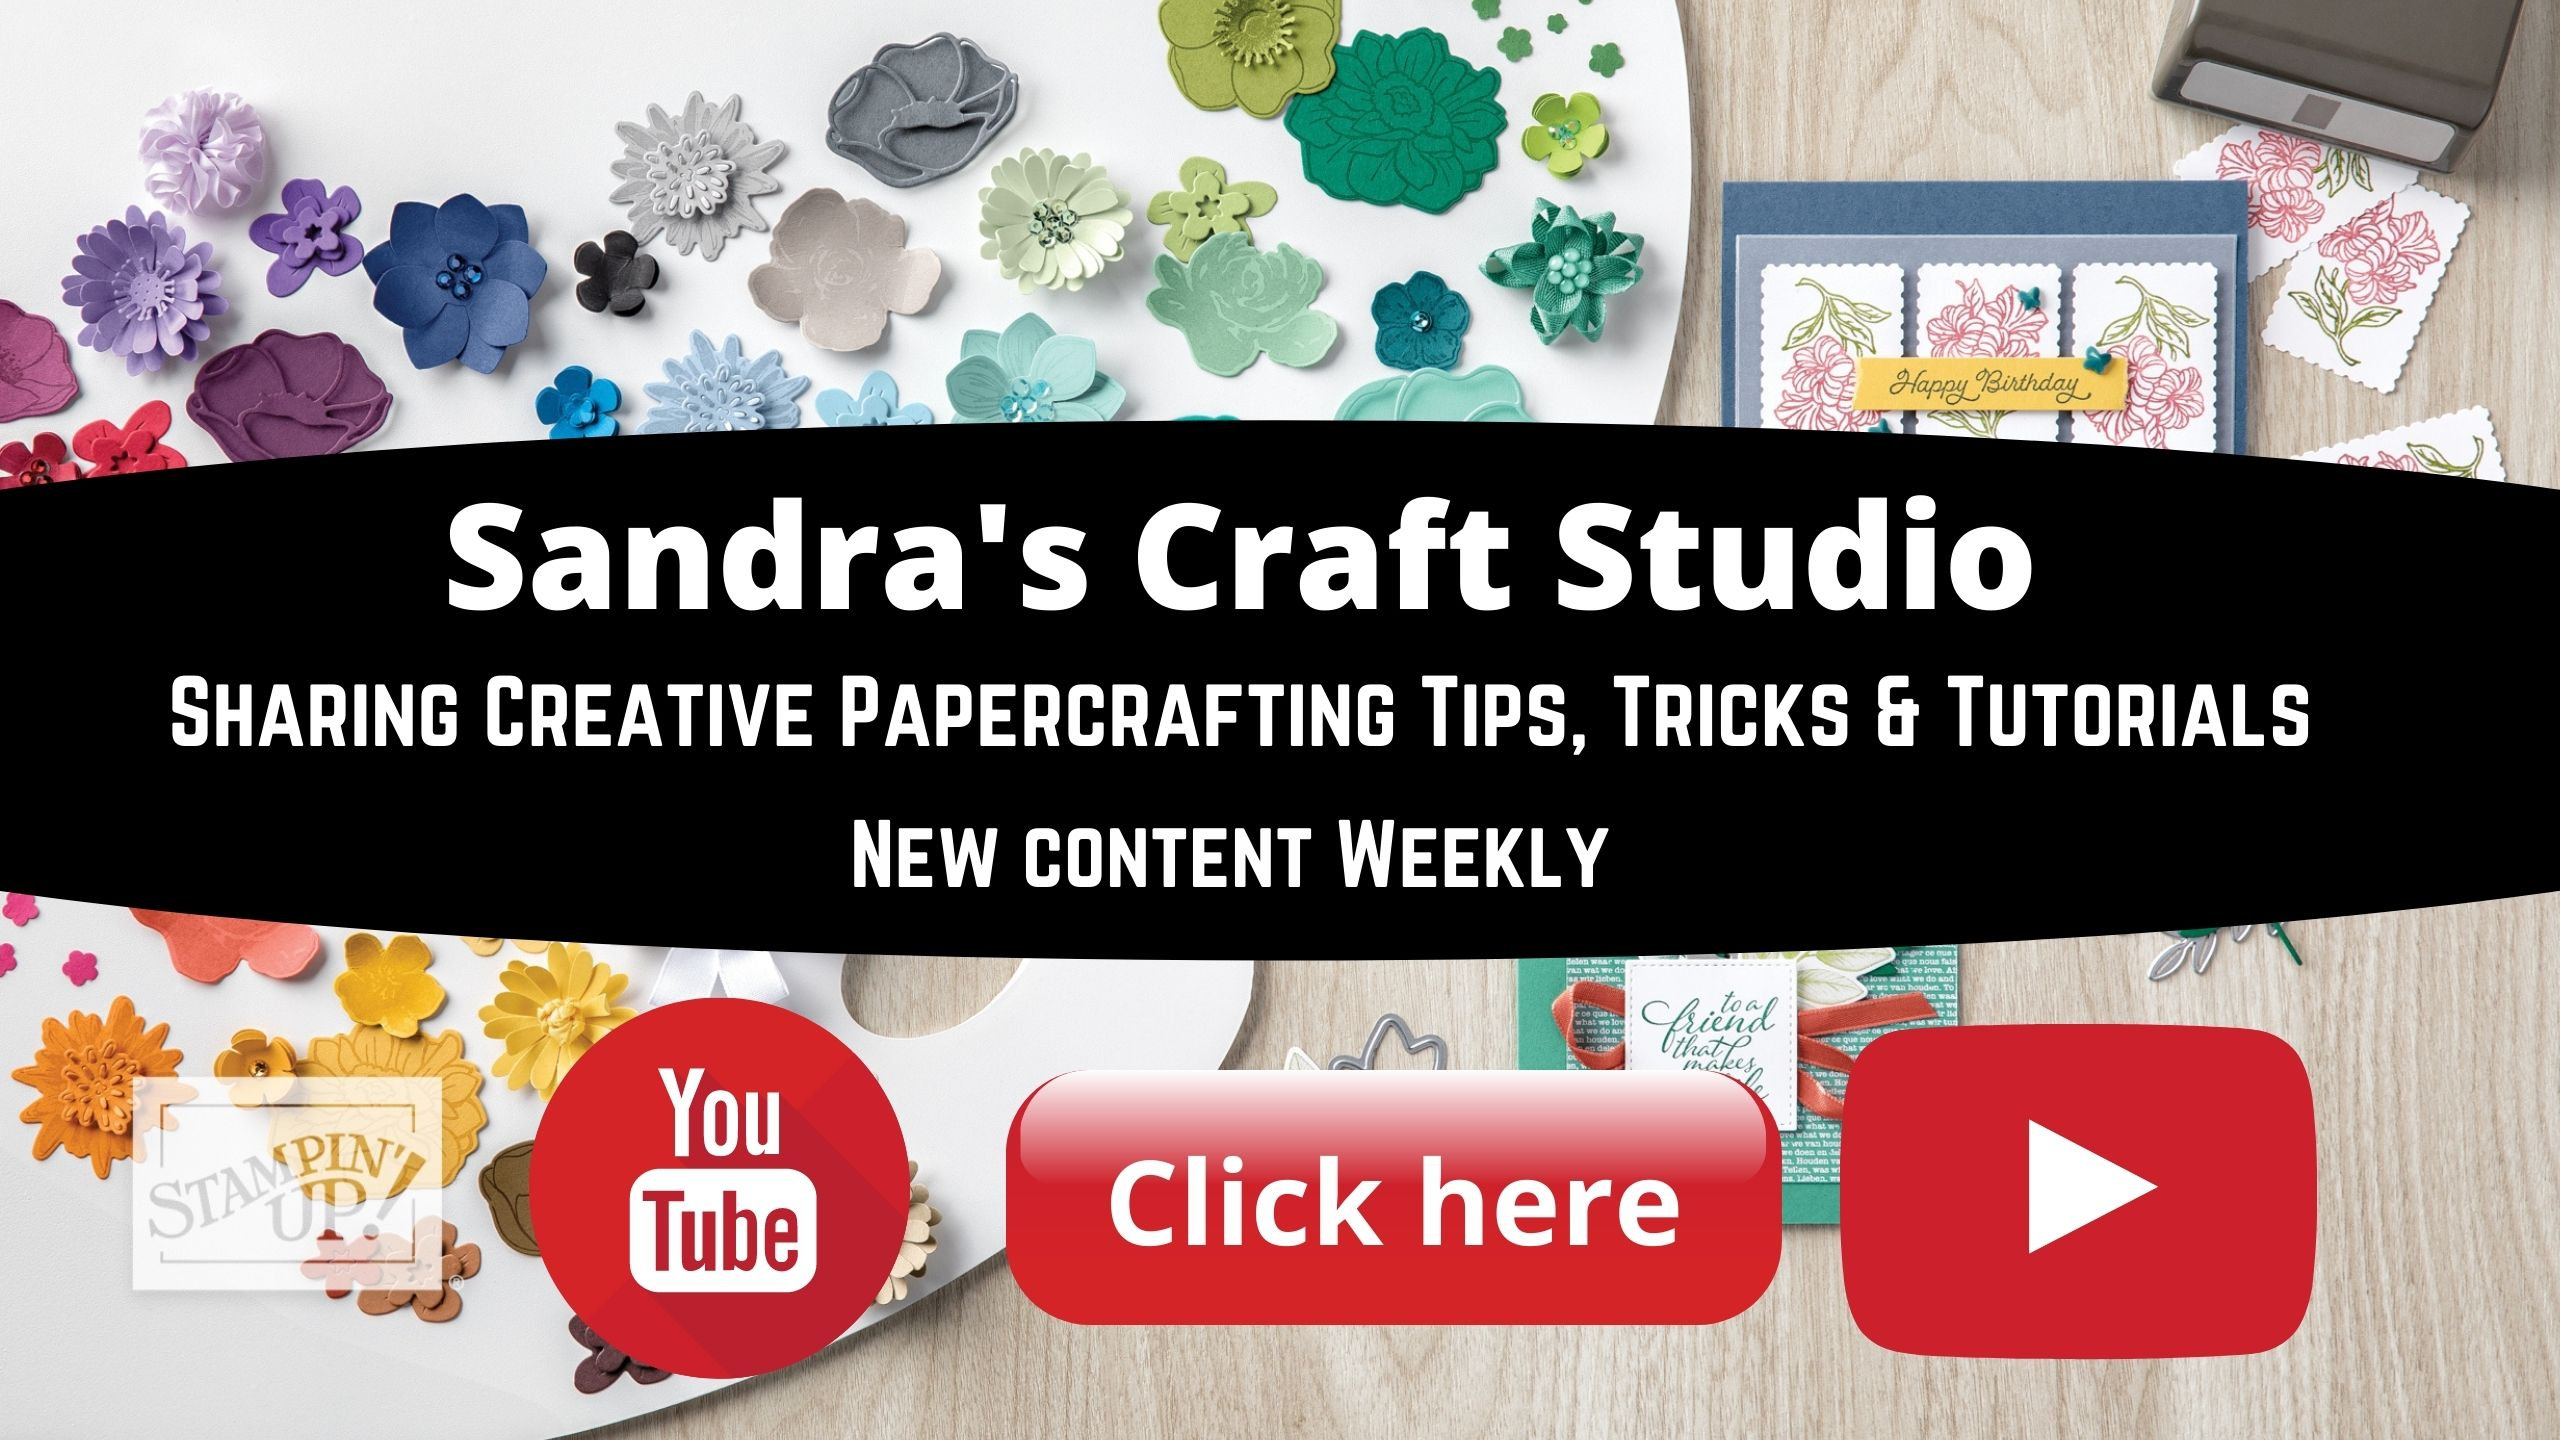 Sandra's Craft Studio YouTube Channel